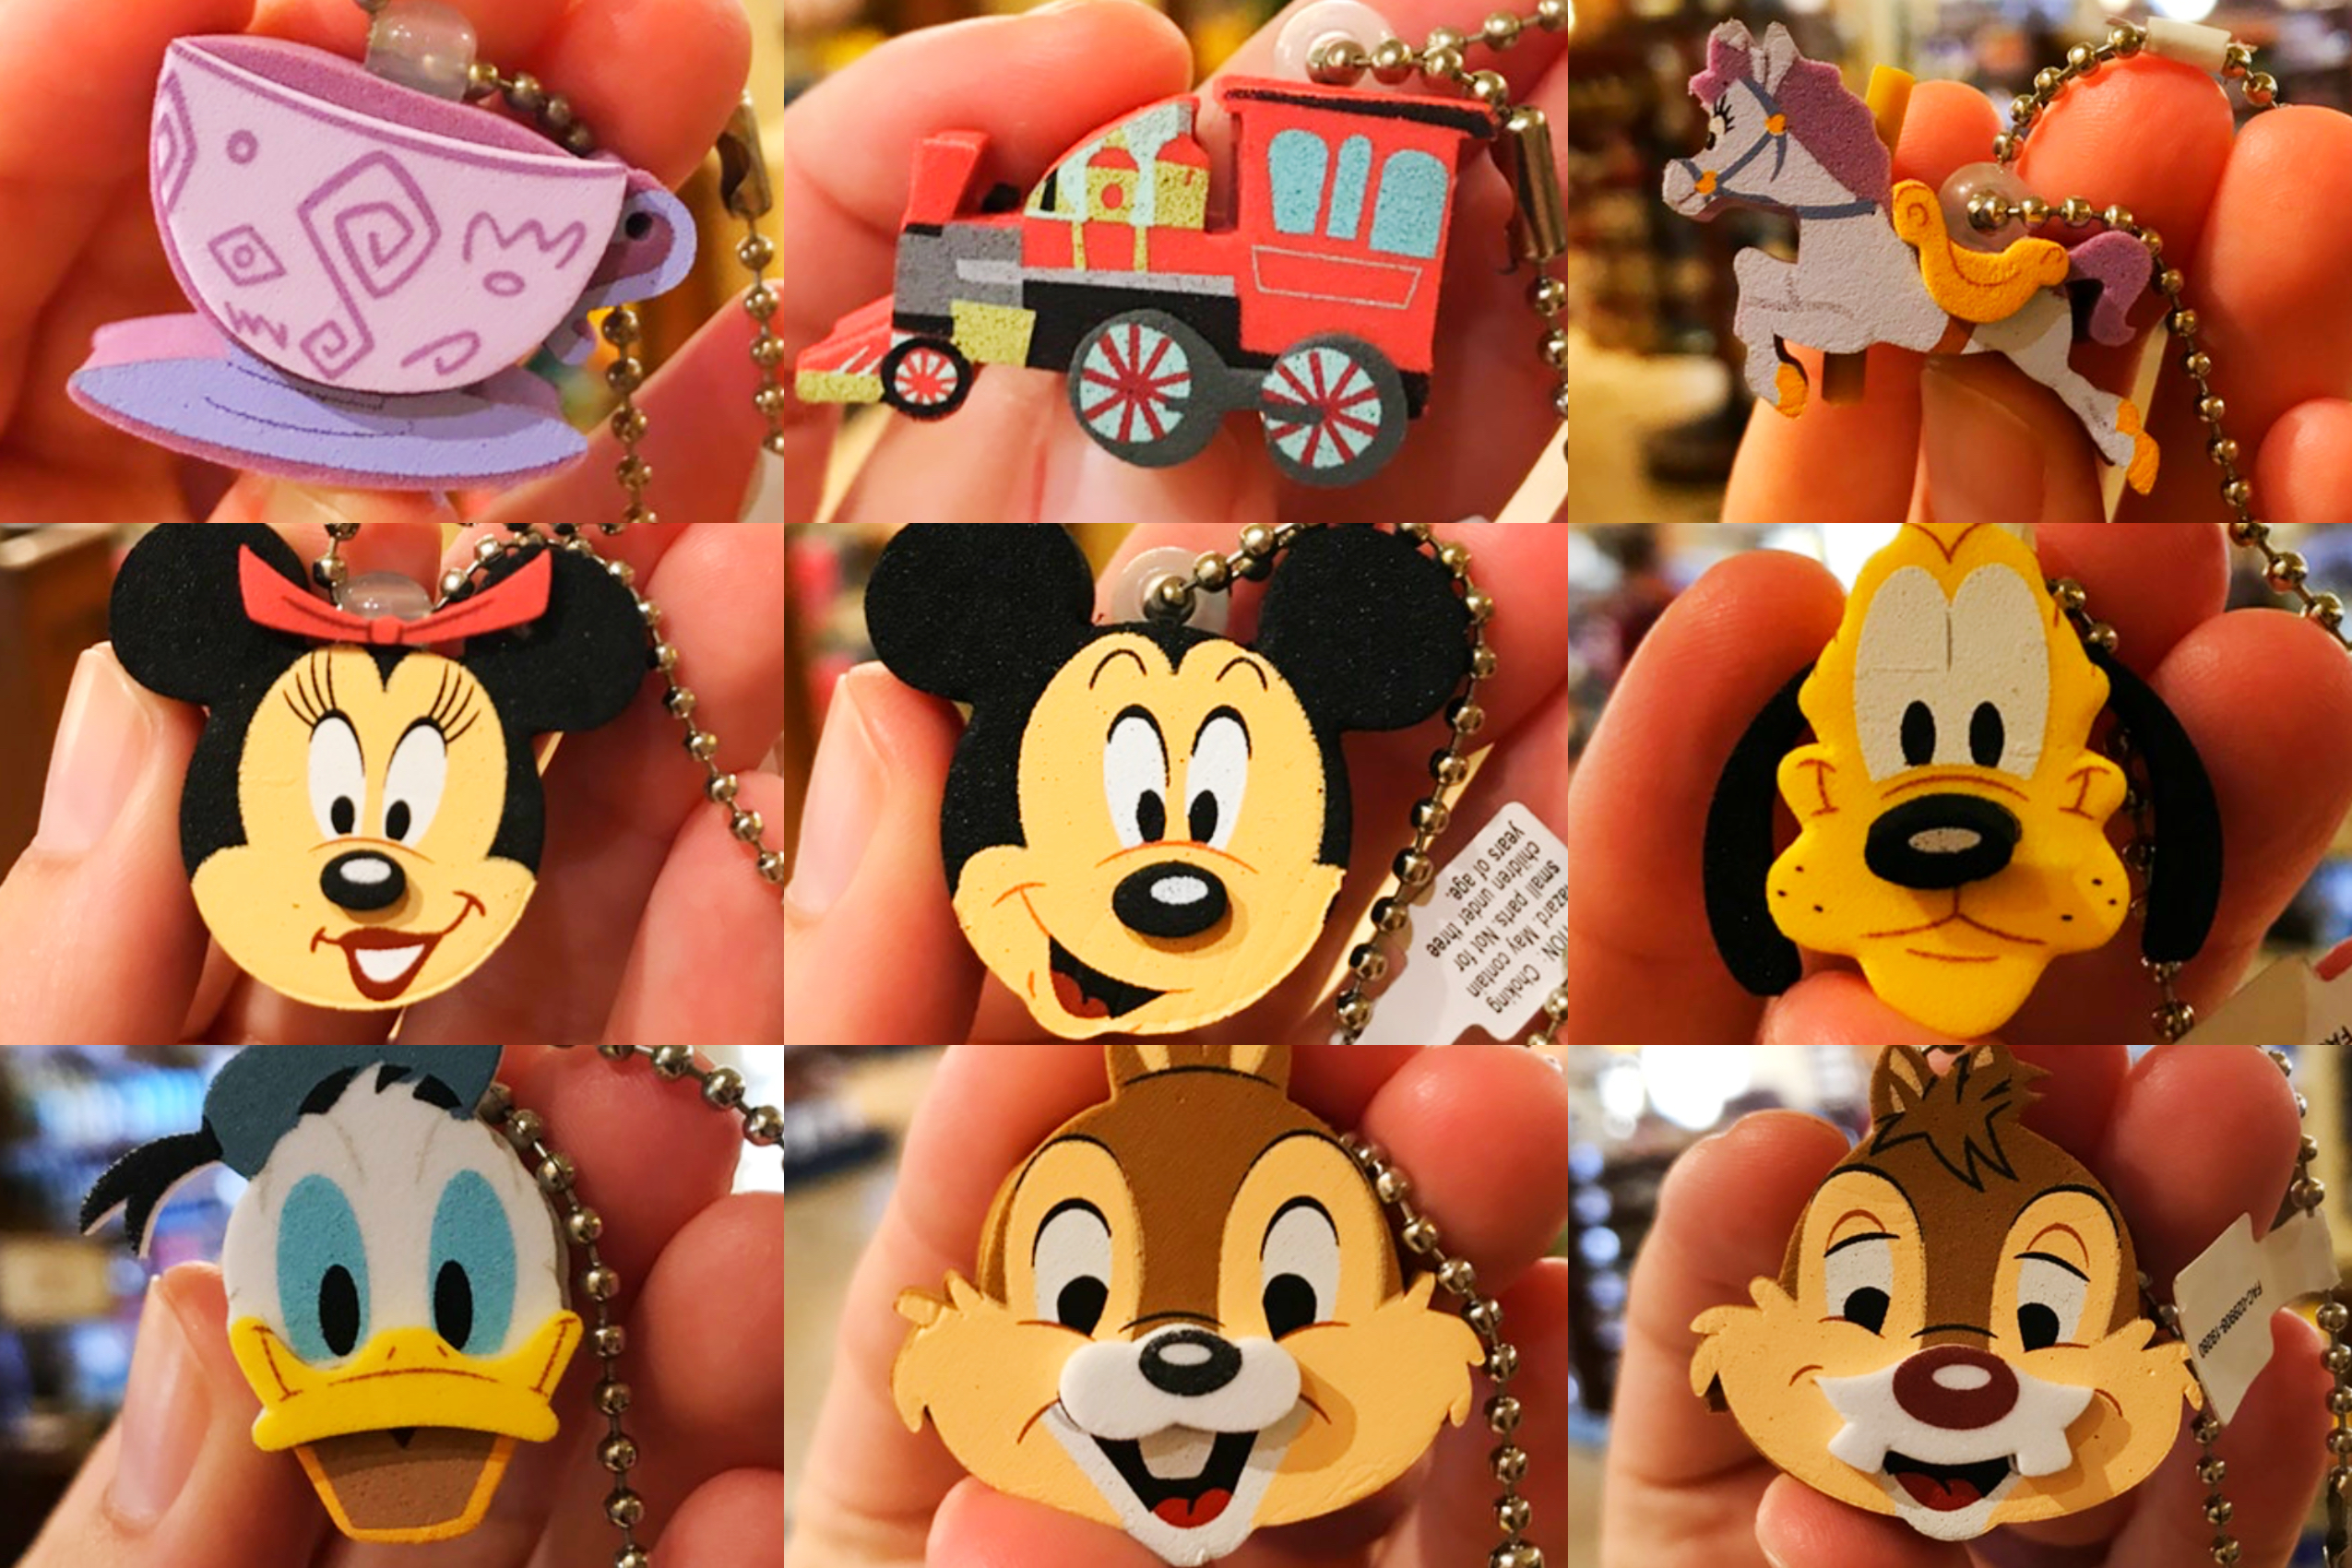 character-keychains-01-2020.jpg